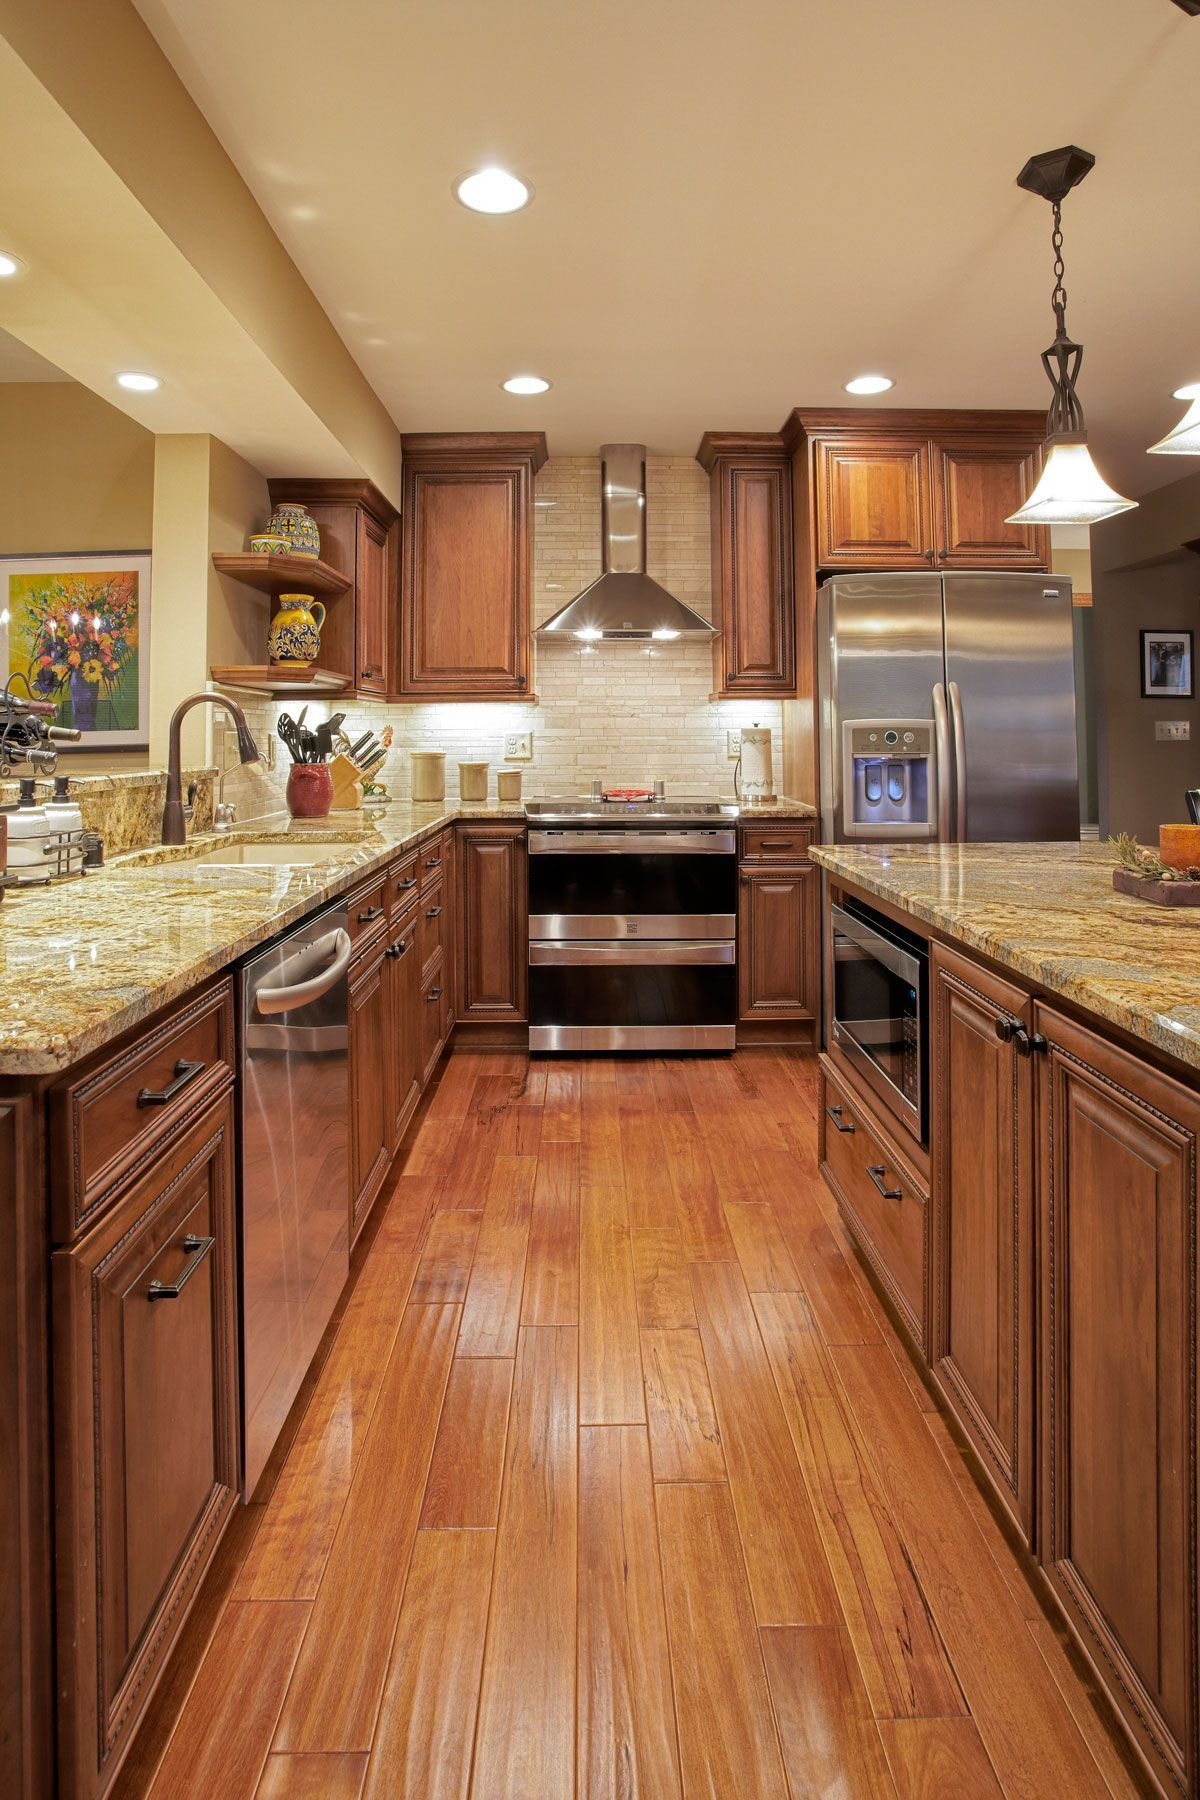 Small Kitchen Design With Cherry Wood Cabinets In 2020 Brown Kitchen Cabinets Wooden Kitchen Cabinets Kitchen Renovation